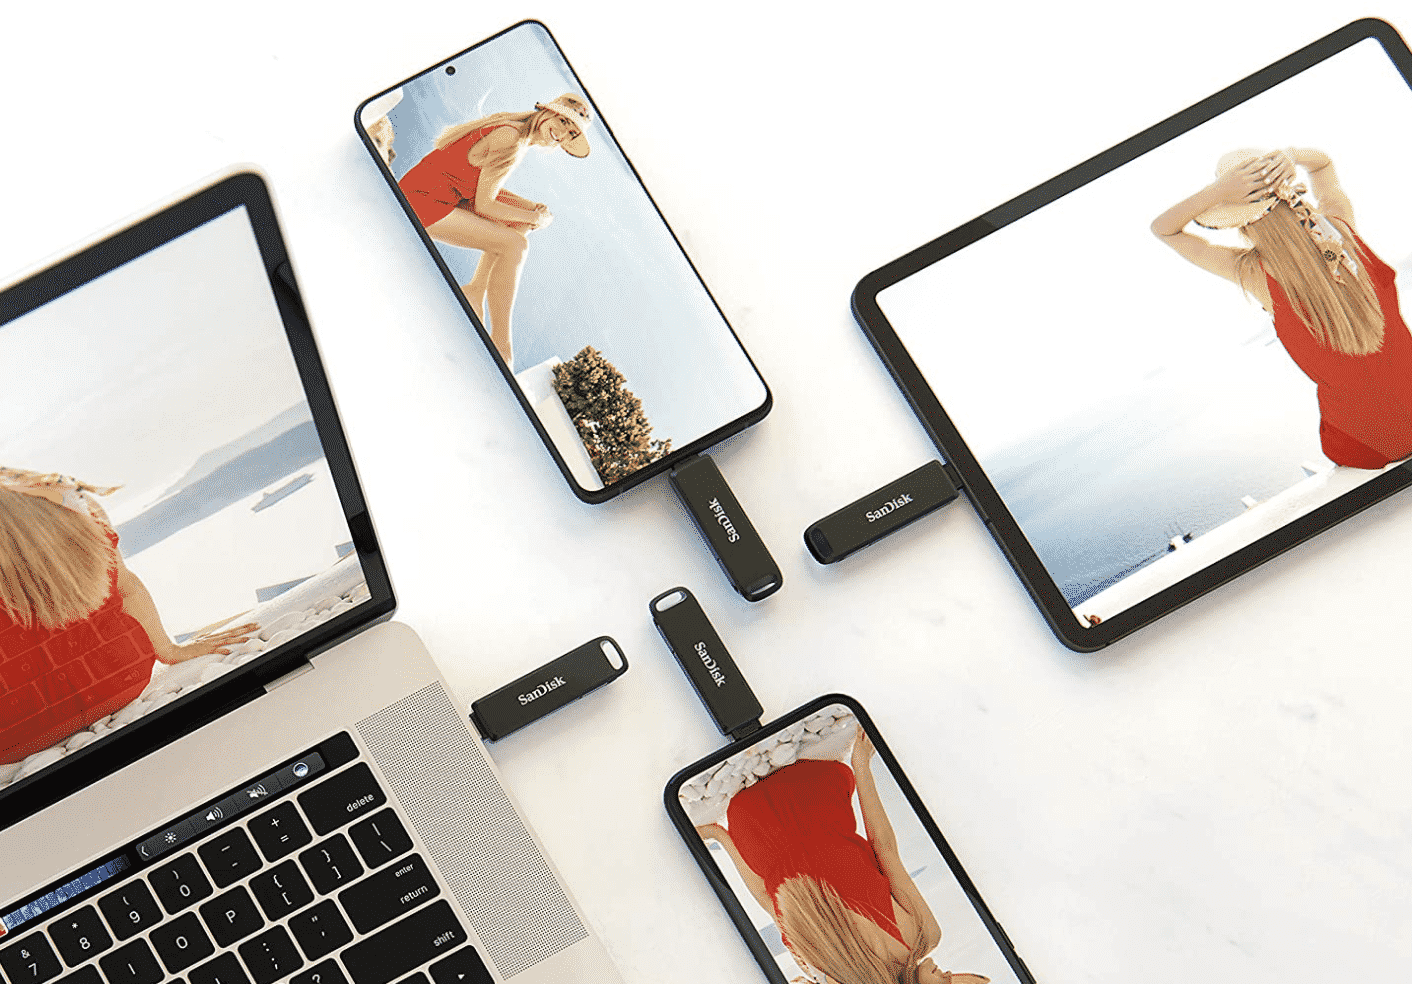 SanDisk 128GB iXpand Flash Drive Luxe for iPhone and USB Type-C Devices